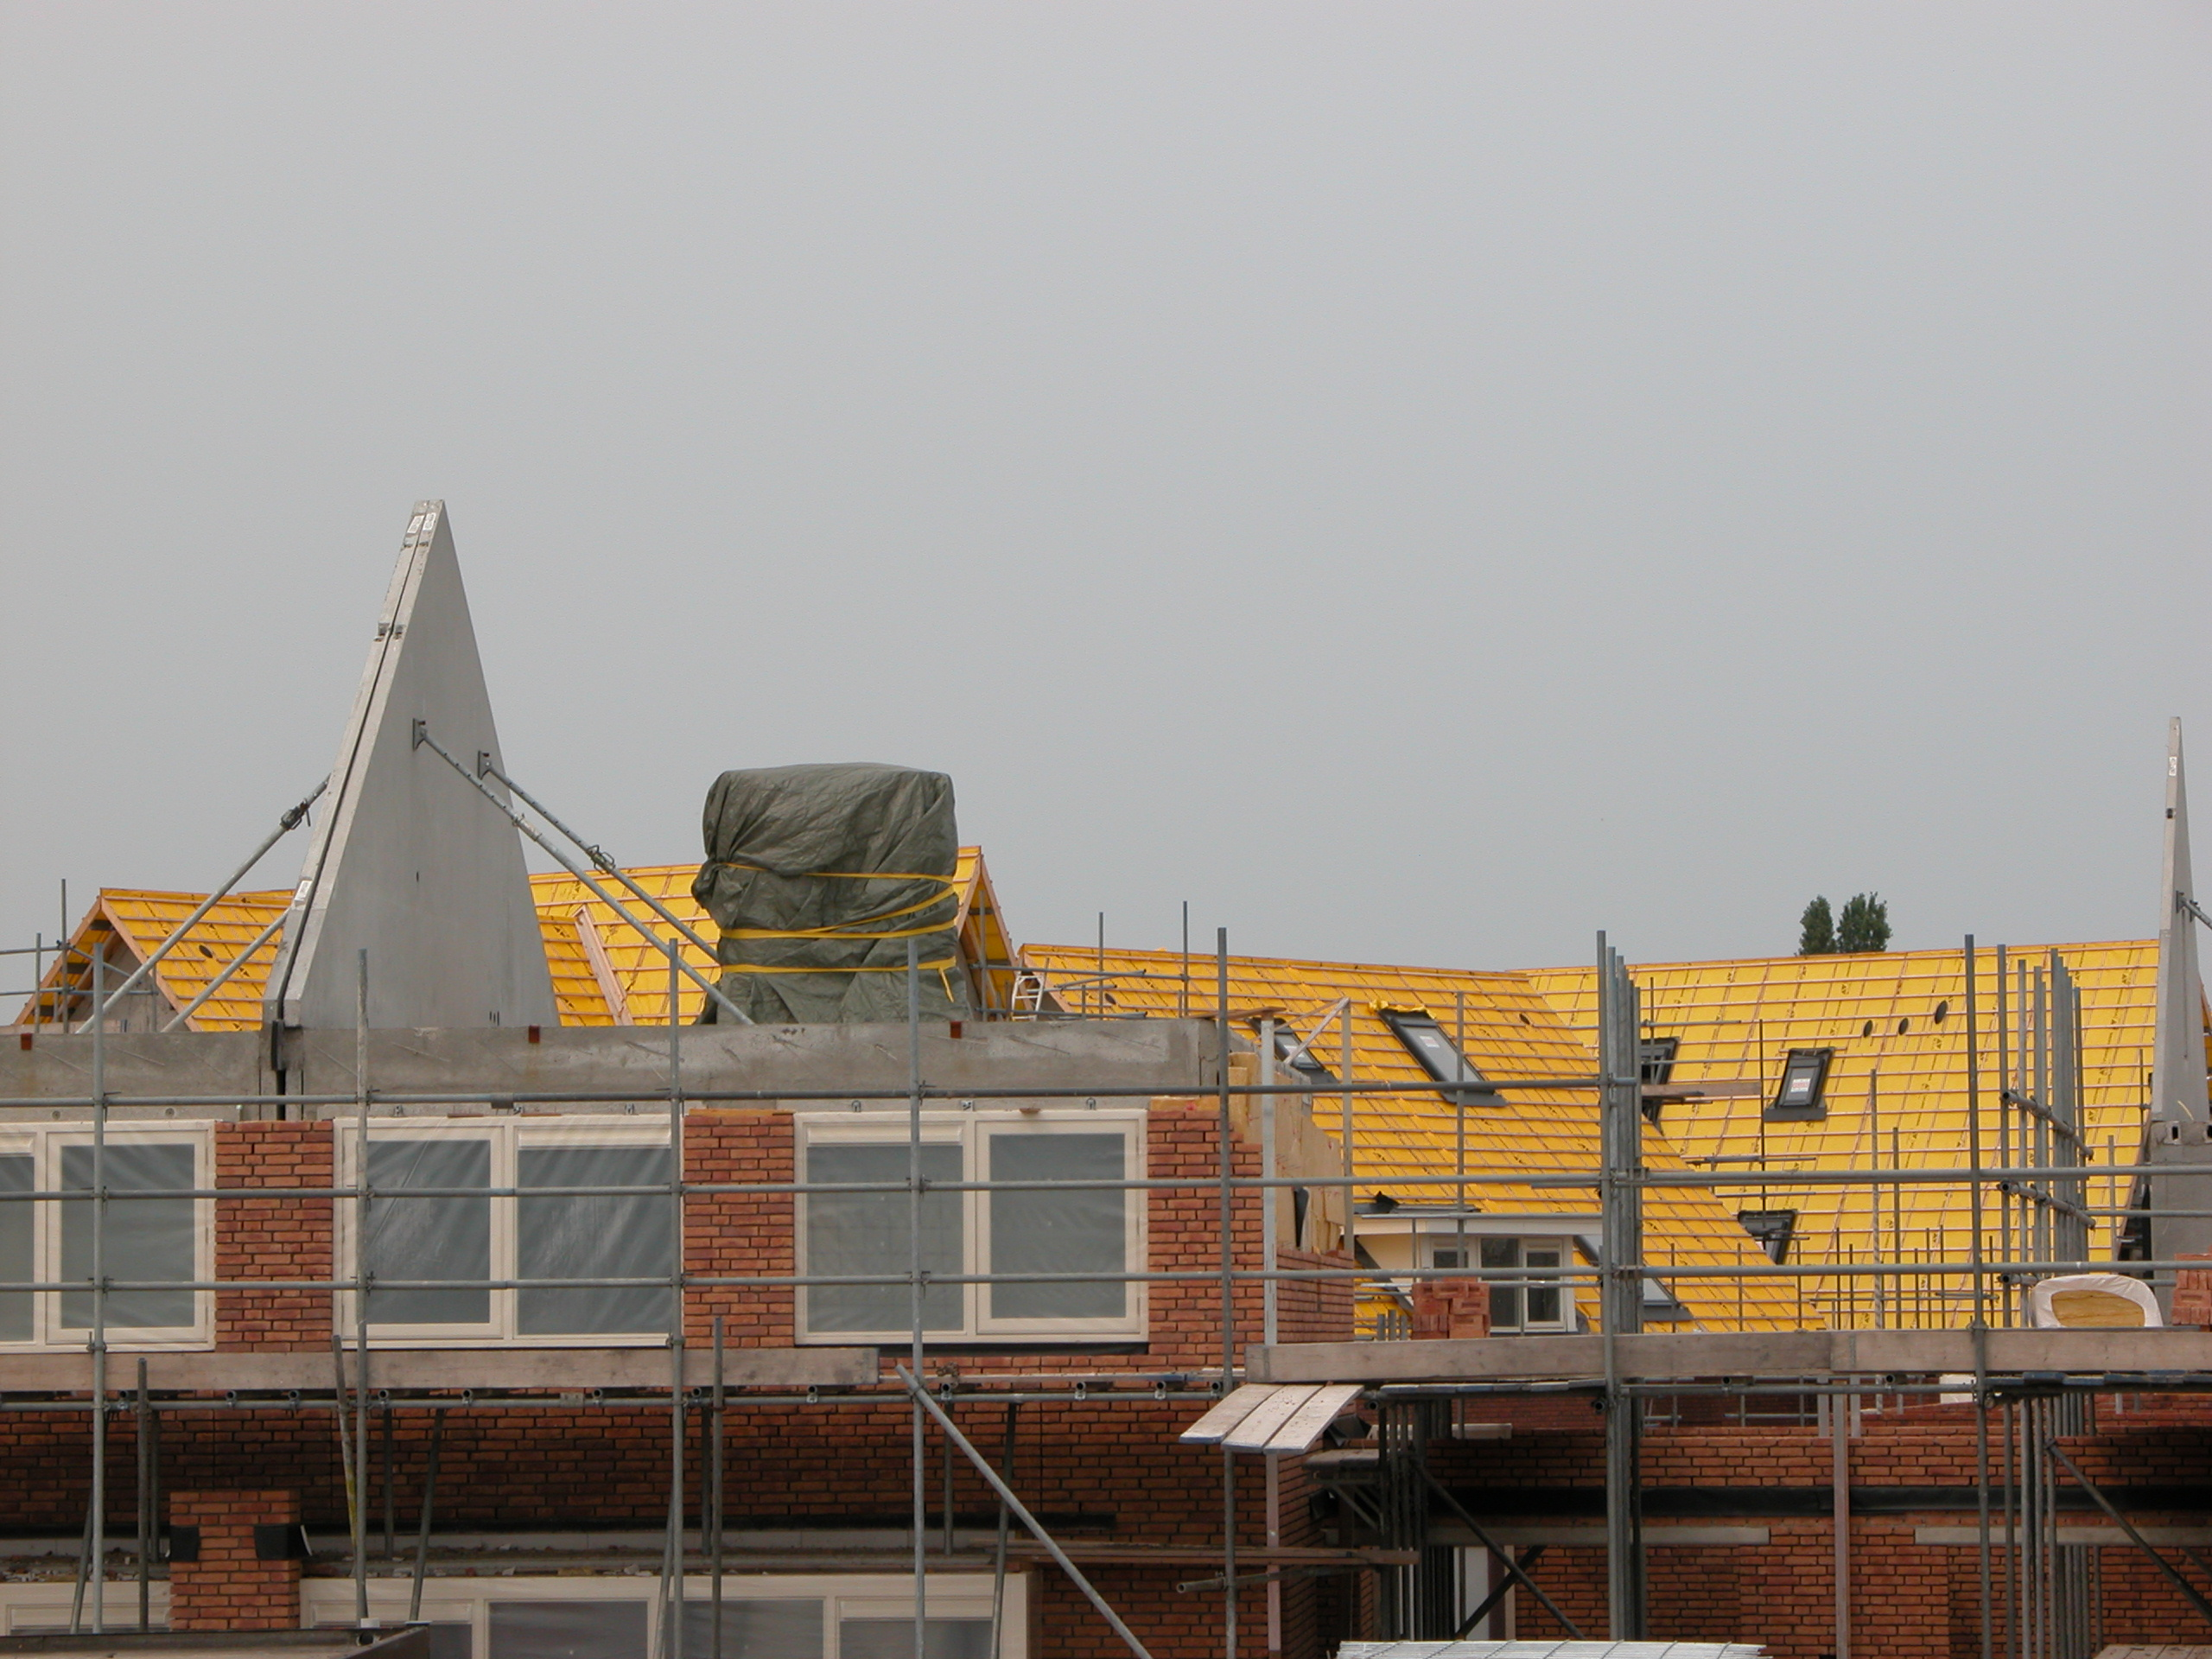 roof rooftop yellow bricks scaffolding building construction site